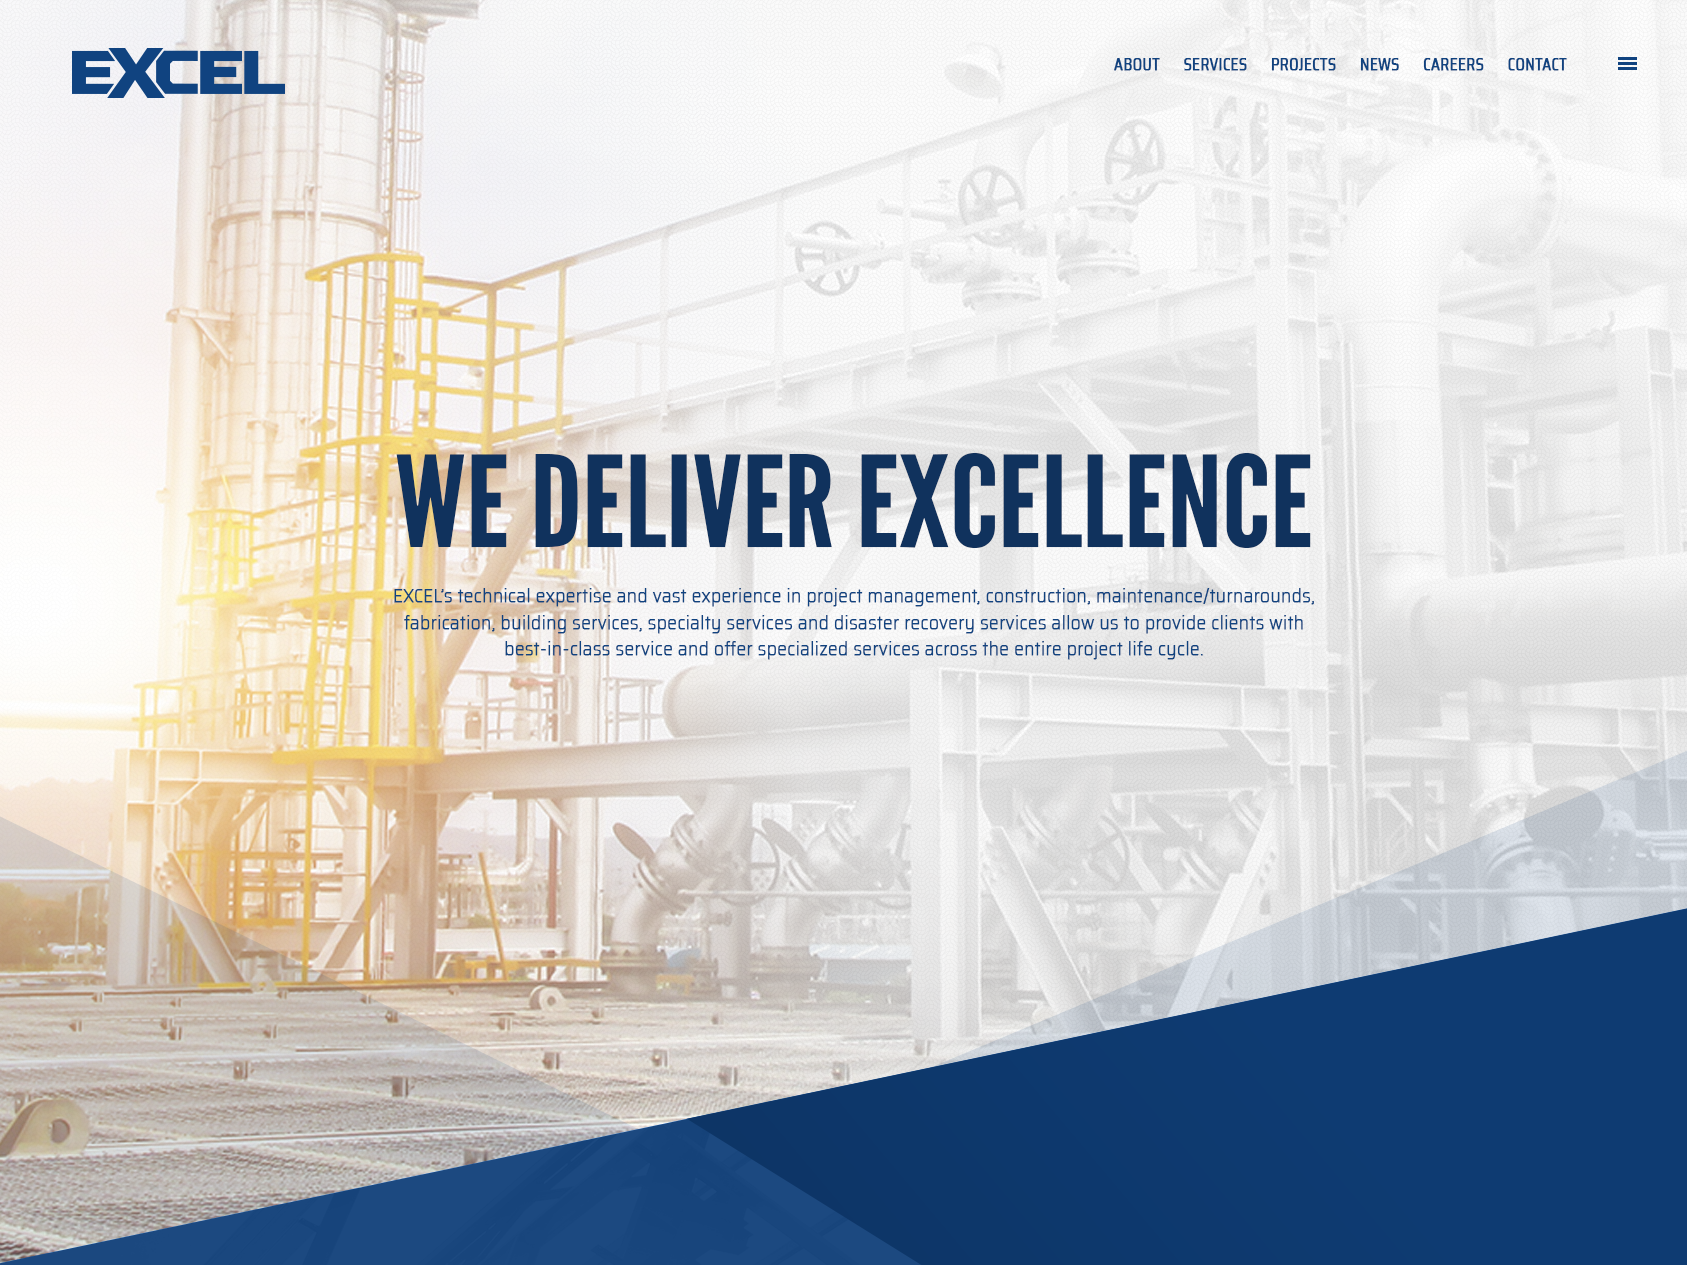 Excel website design03